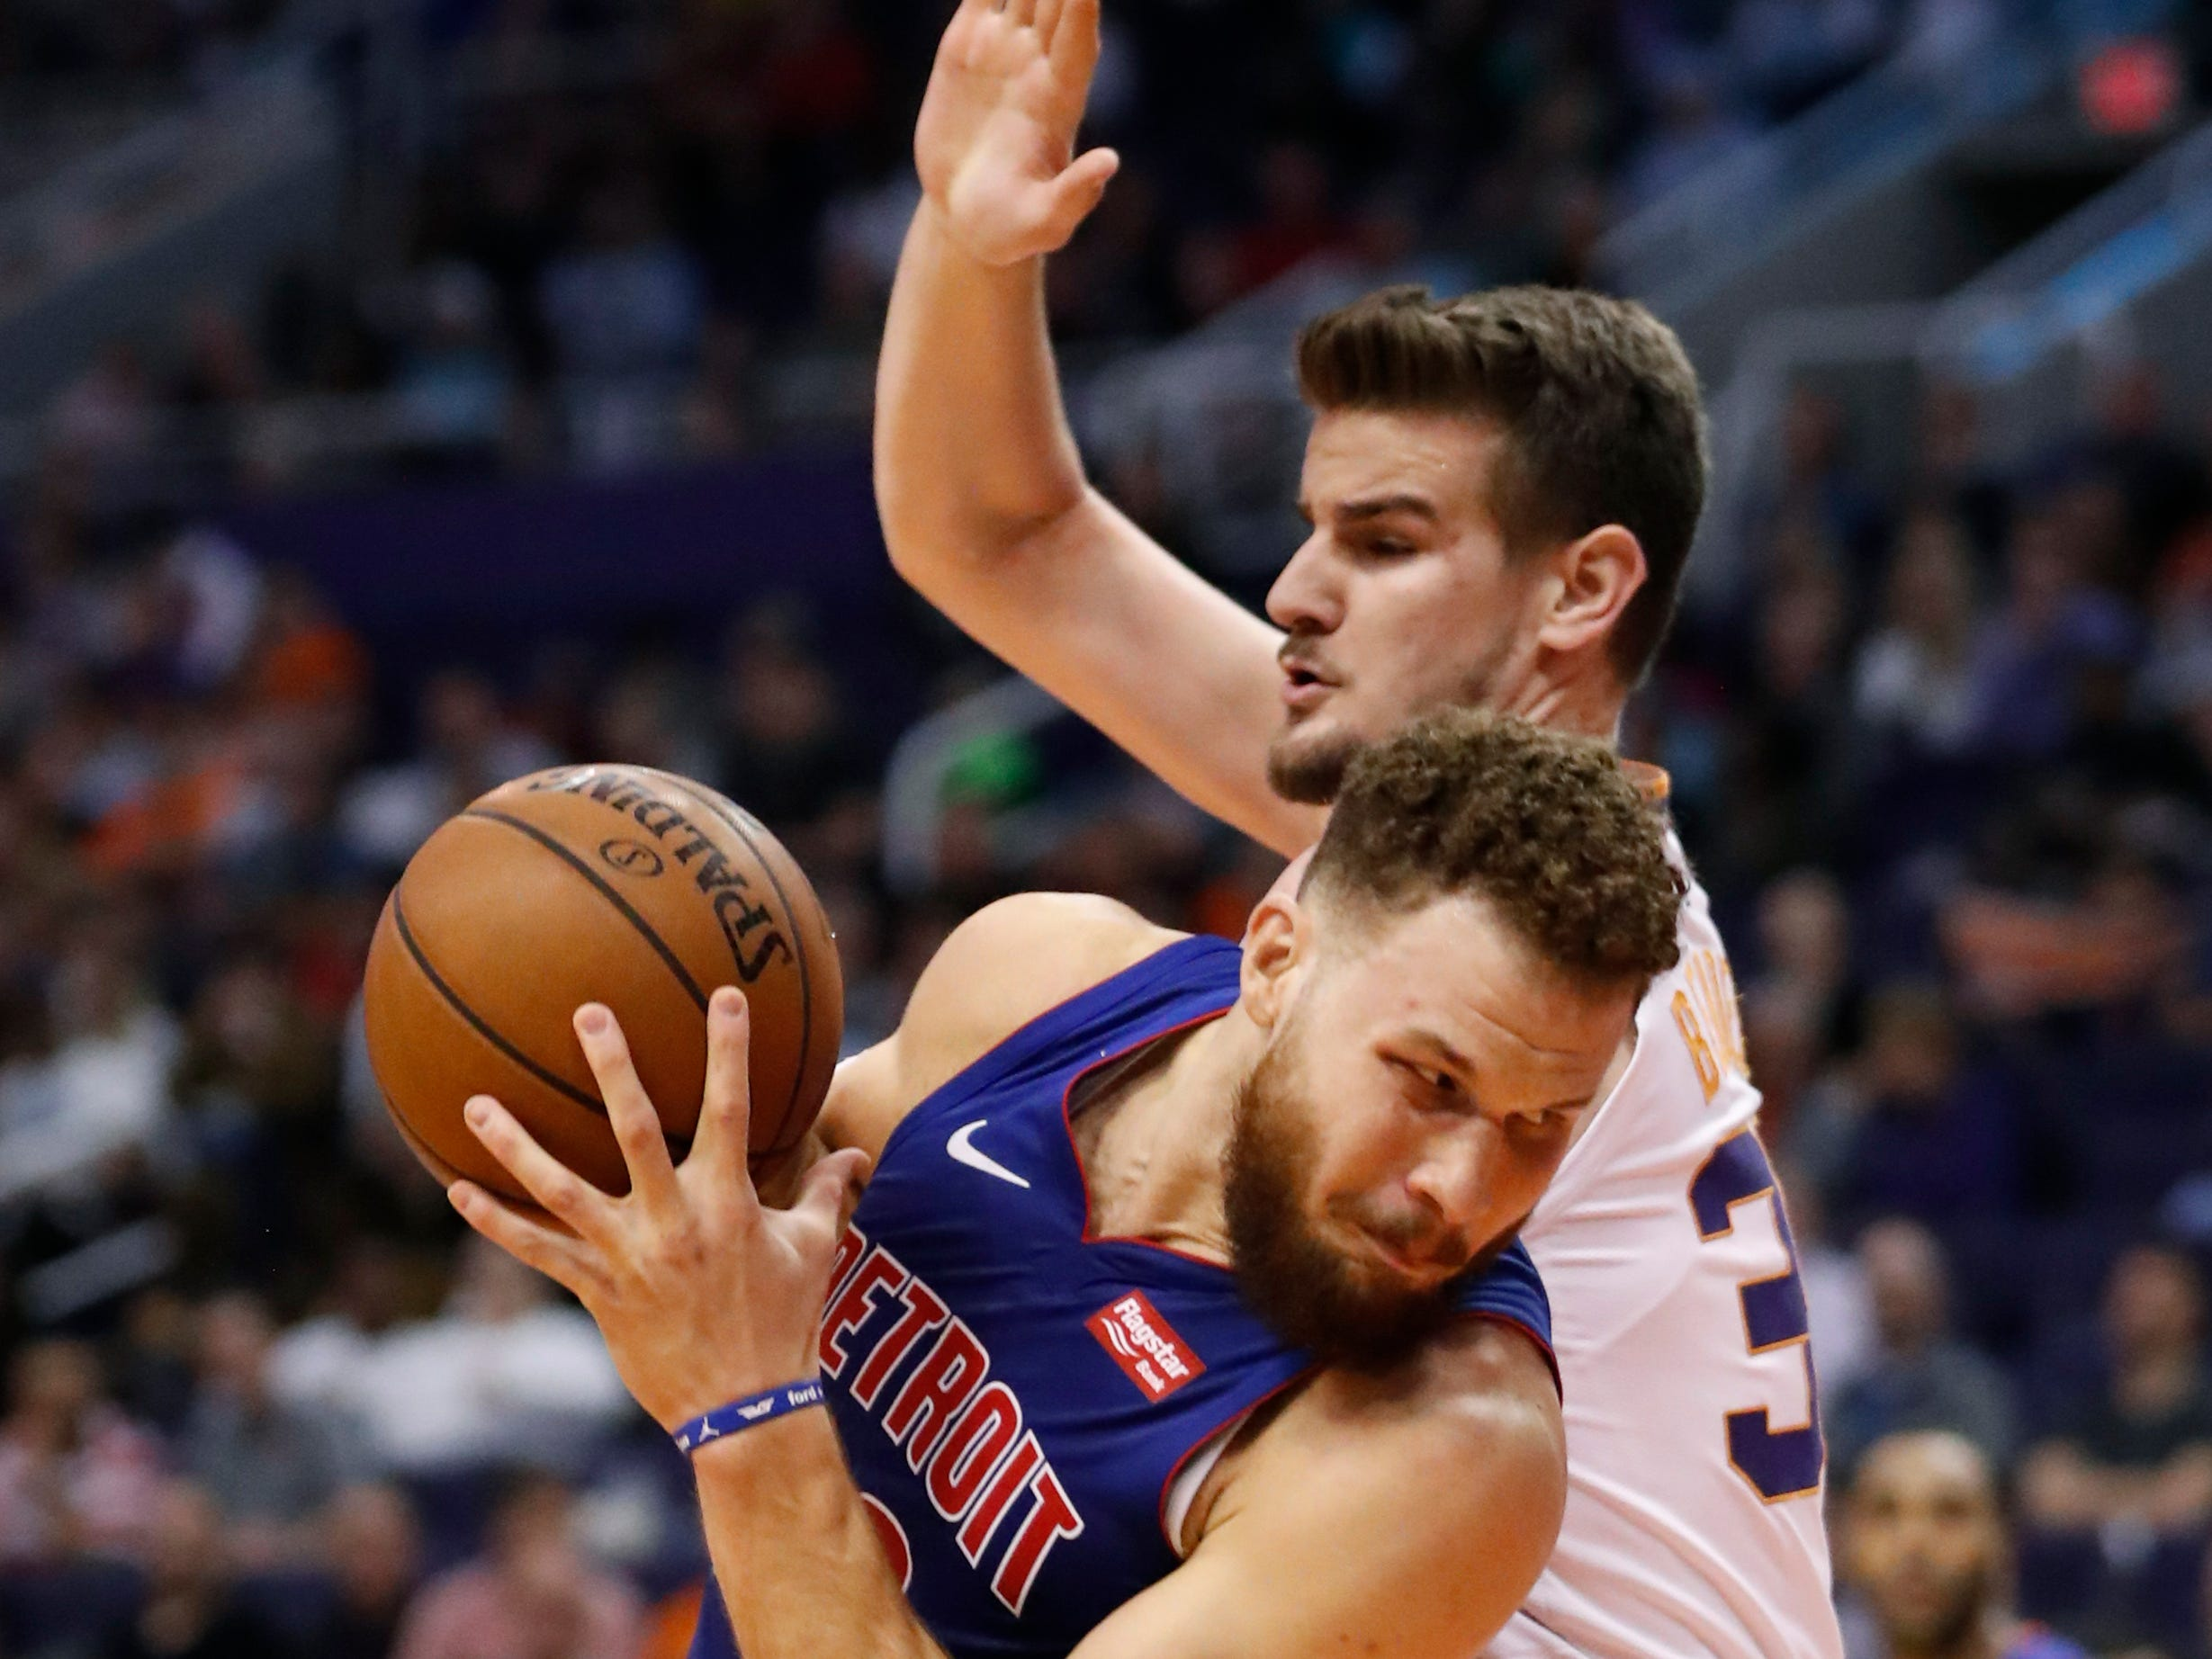 Detroit Pistons forward Blake Griffin backs down Phoenix Suns forward Dragan Bender, right, during the first half of an NBA basketball game Thursday, March 21, 2019, in Phoenix.